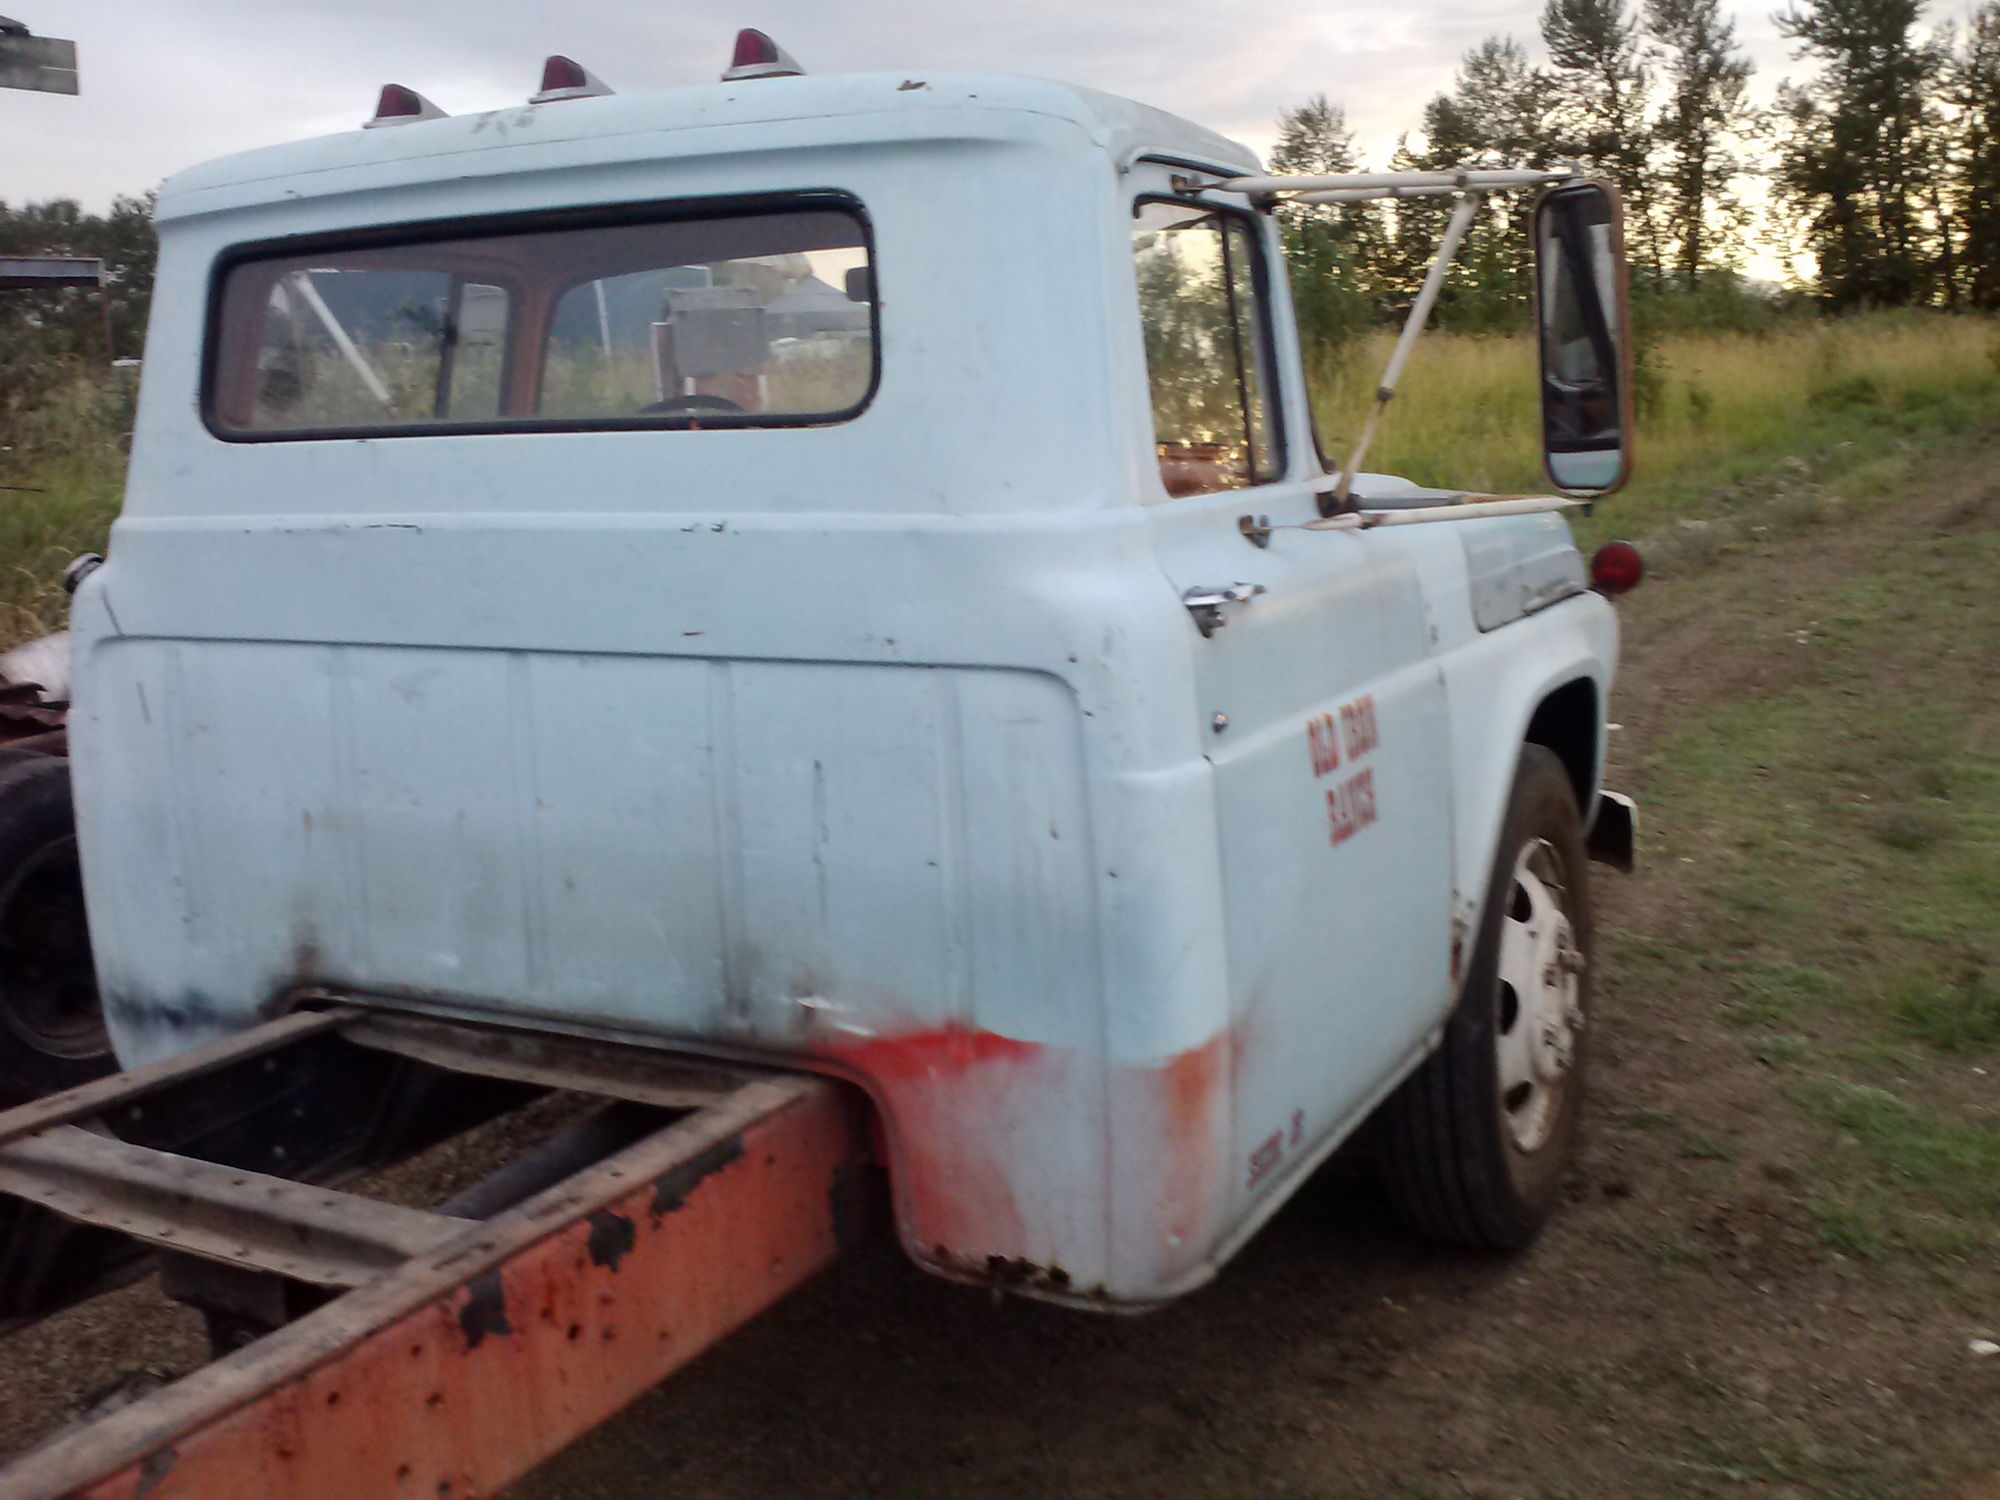 New to me 1958 f600 ford truck enthusiasts forums the 292 and 4 speed may go into the 1948 f6 that we picked up at work a few weeks ago replace its seized straight six then have 2 kickass trucks nvjuhfo Images